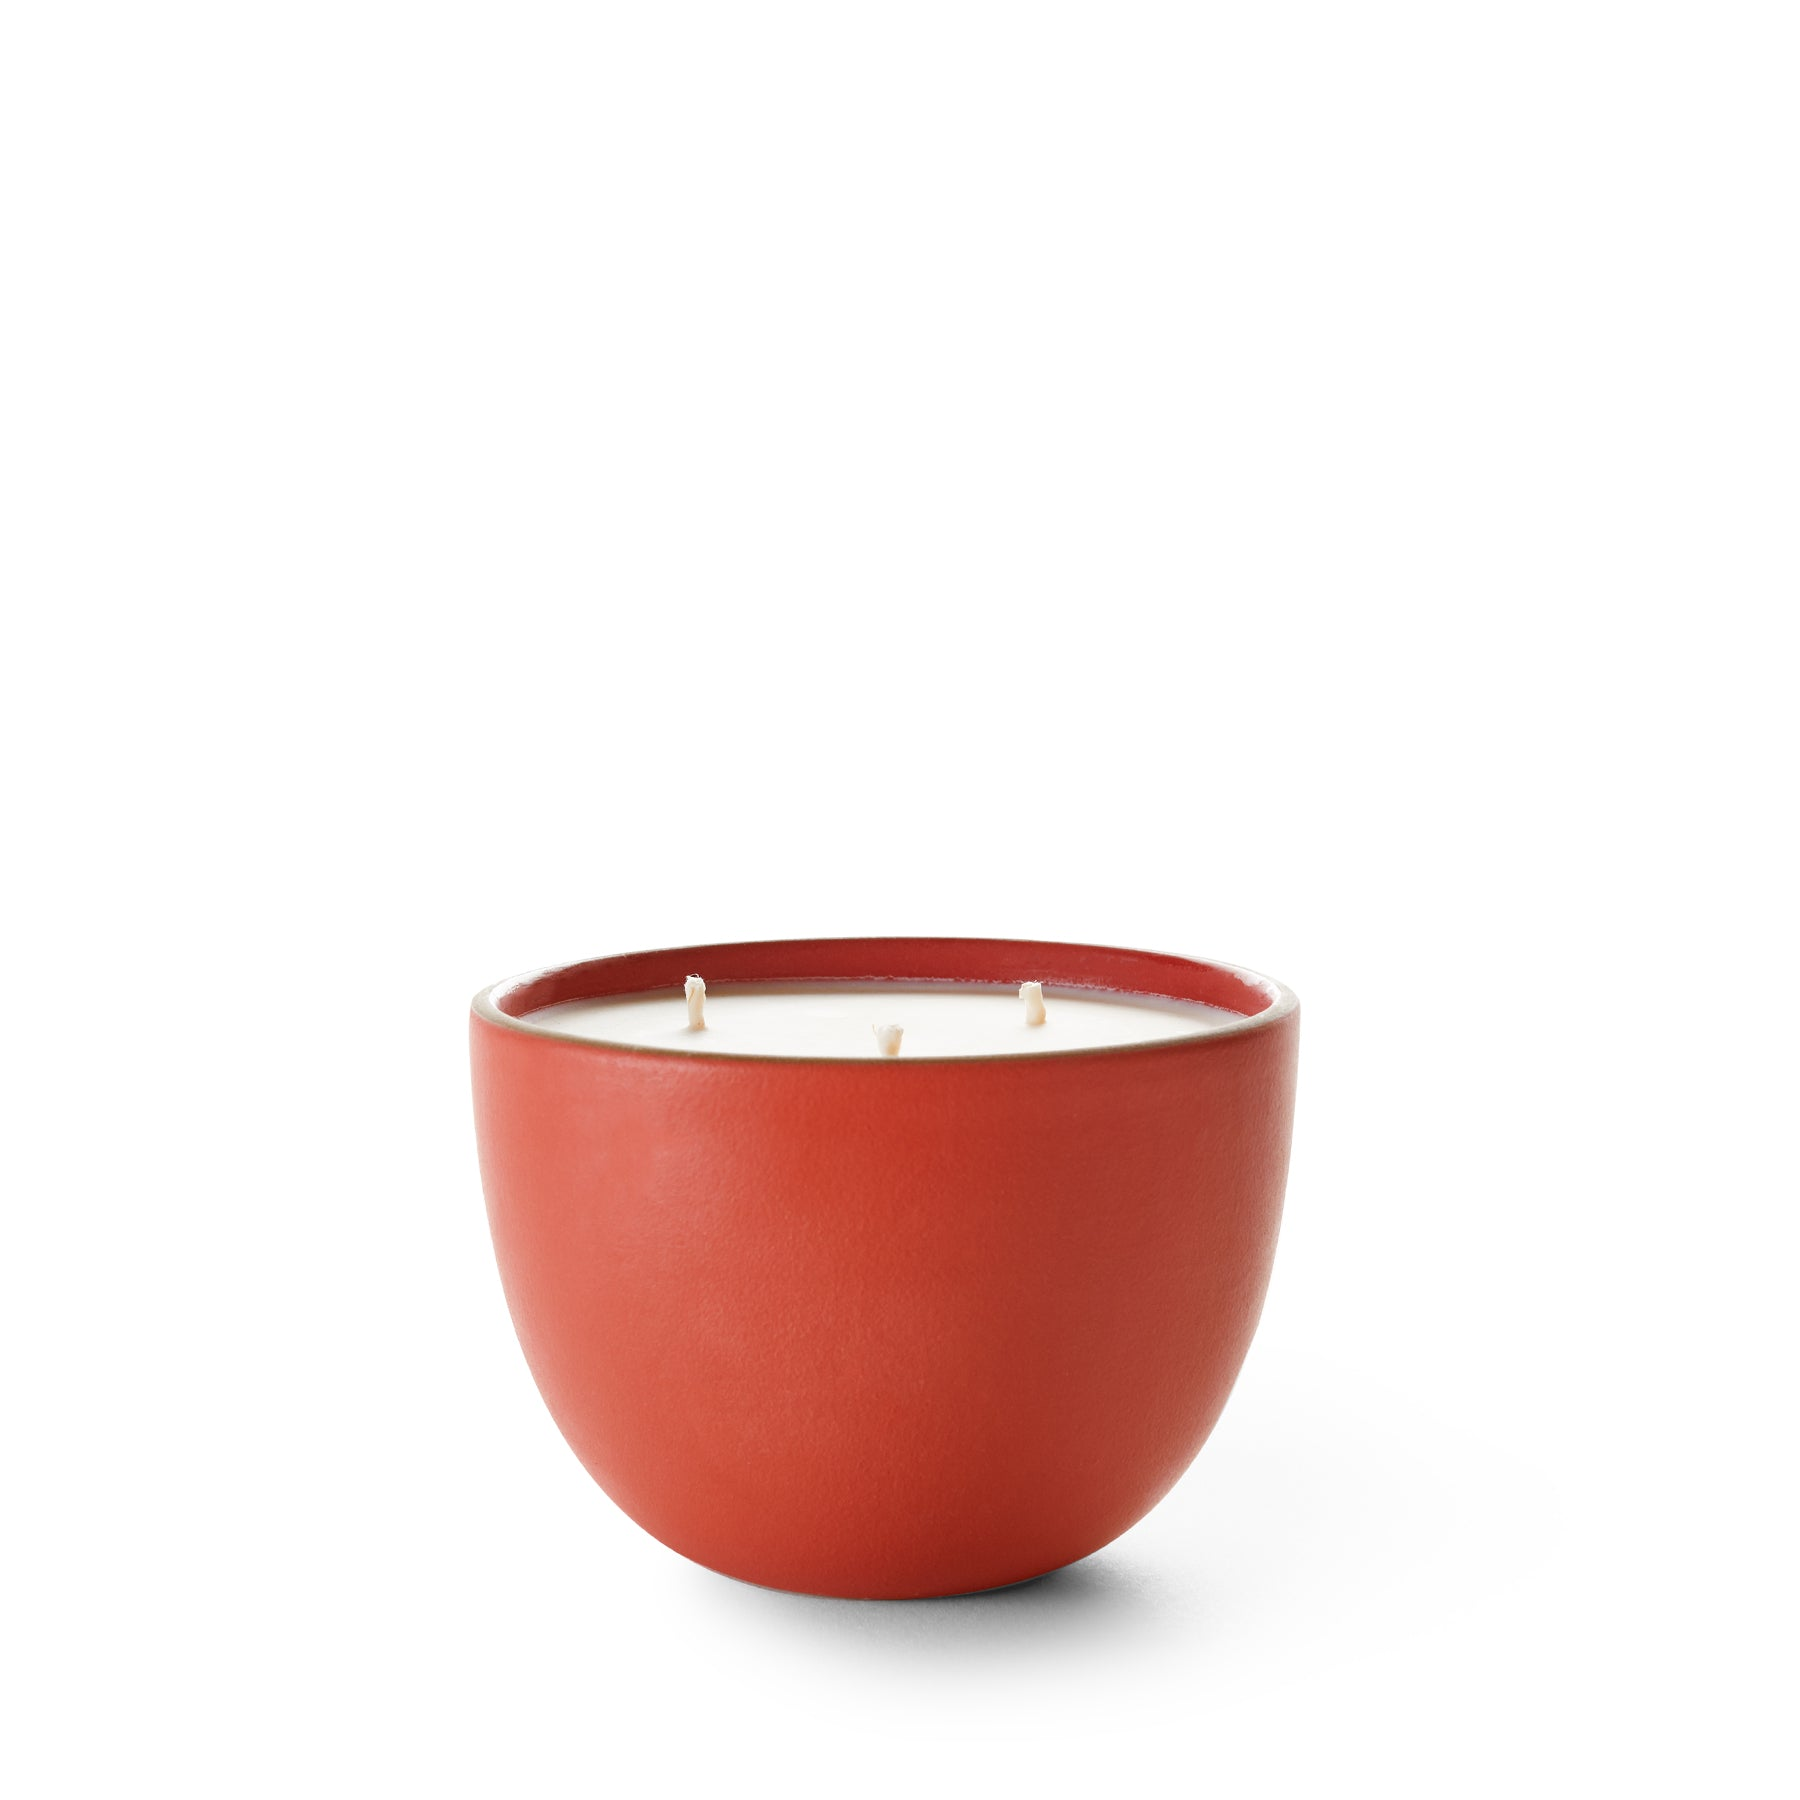 Pine and Cedarwood Candle in Suede Red Bowl Zoom Image 1